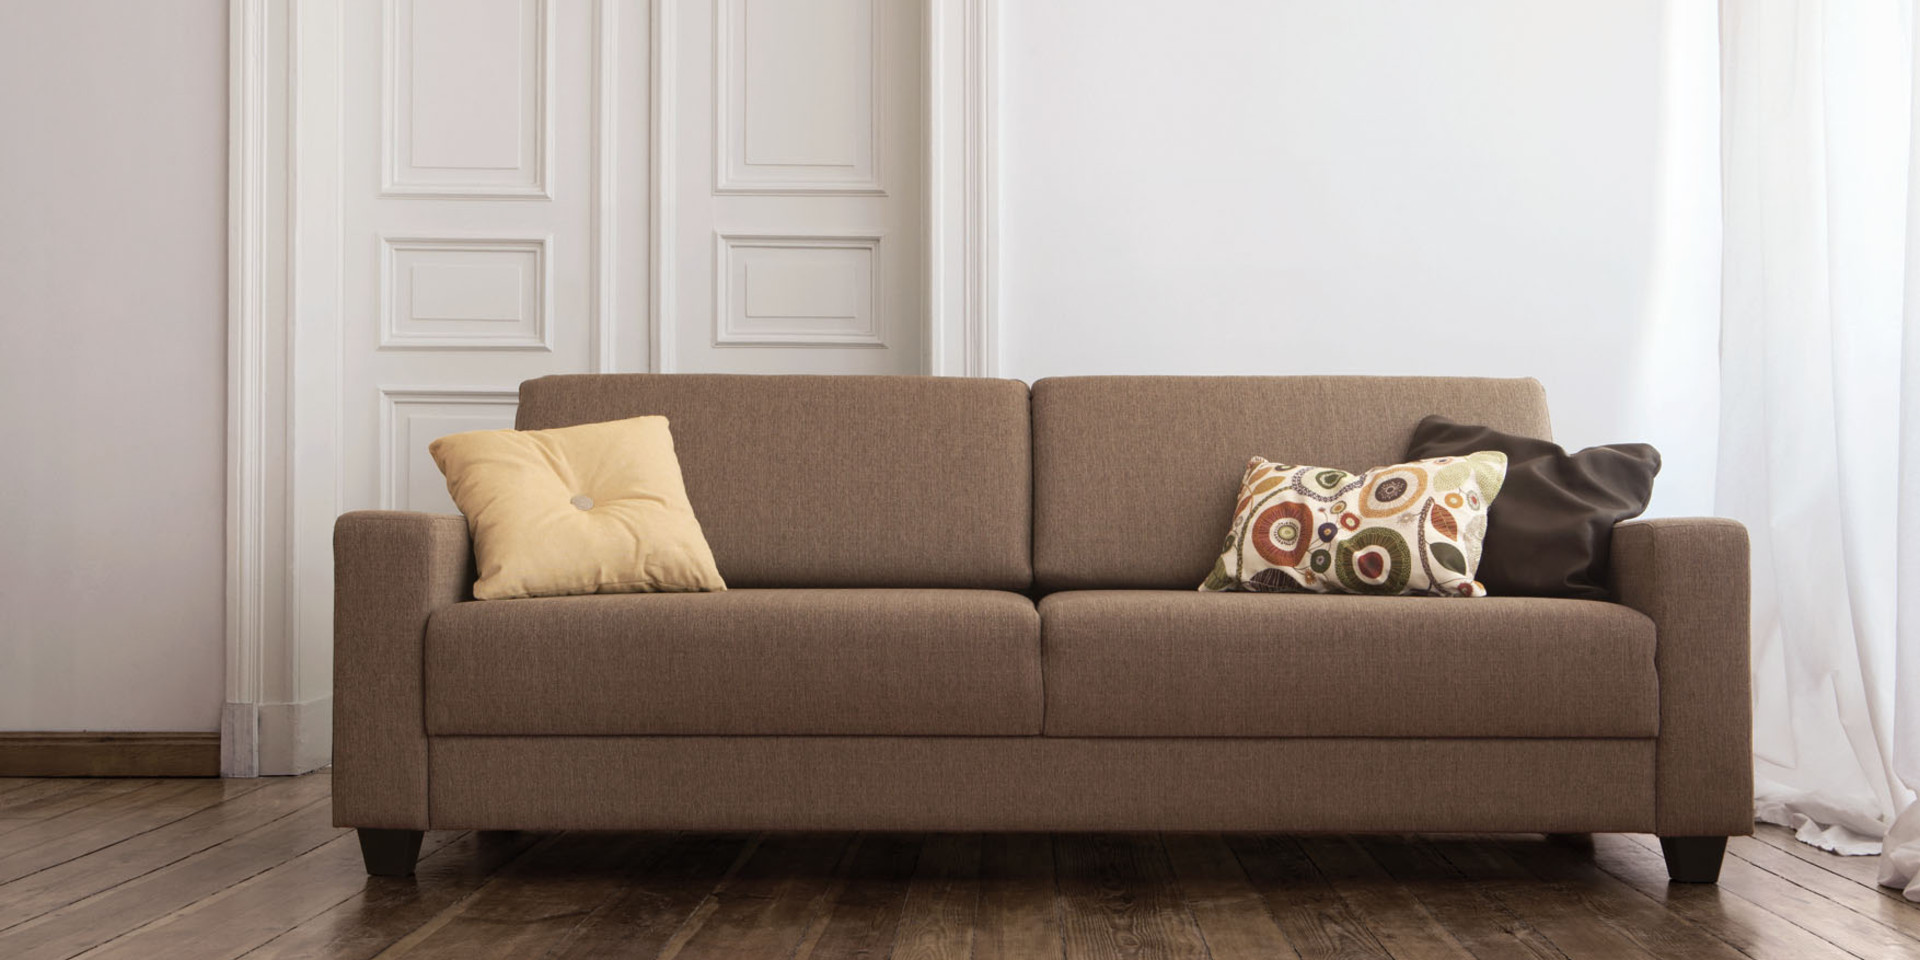 sits-bari-ambiance-arrangement_sofa_bed_cedros3_light_brown_3